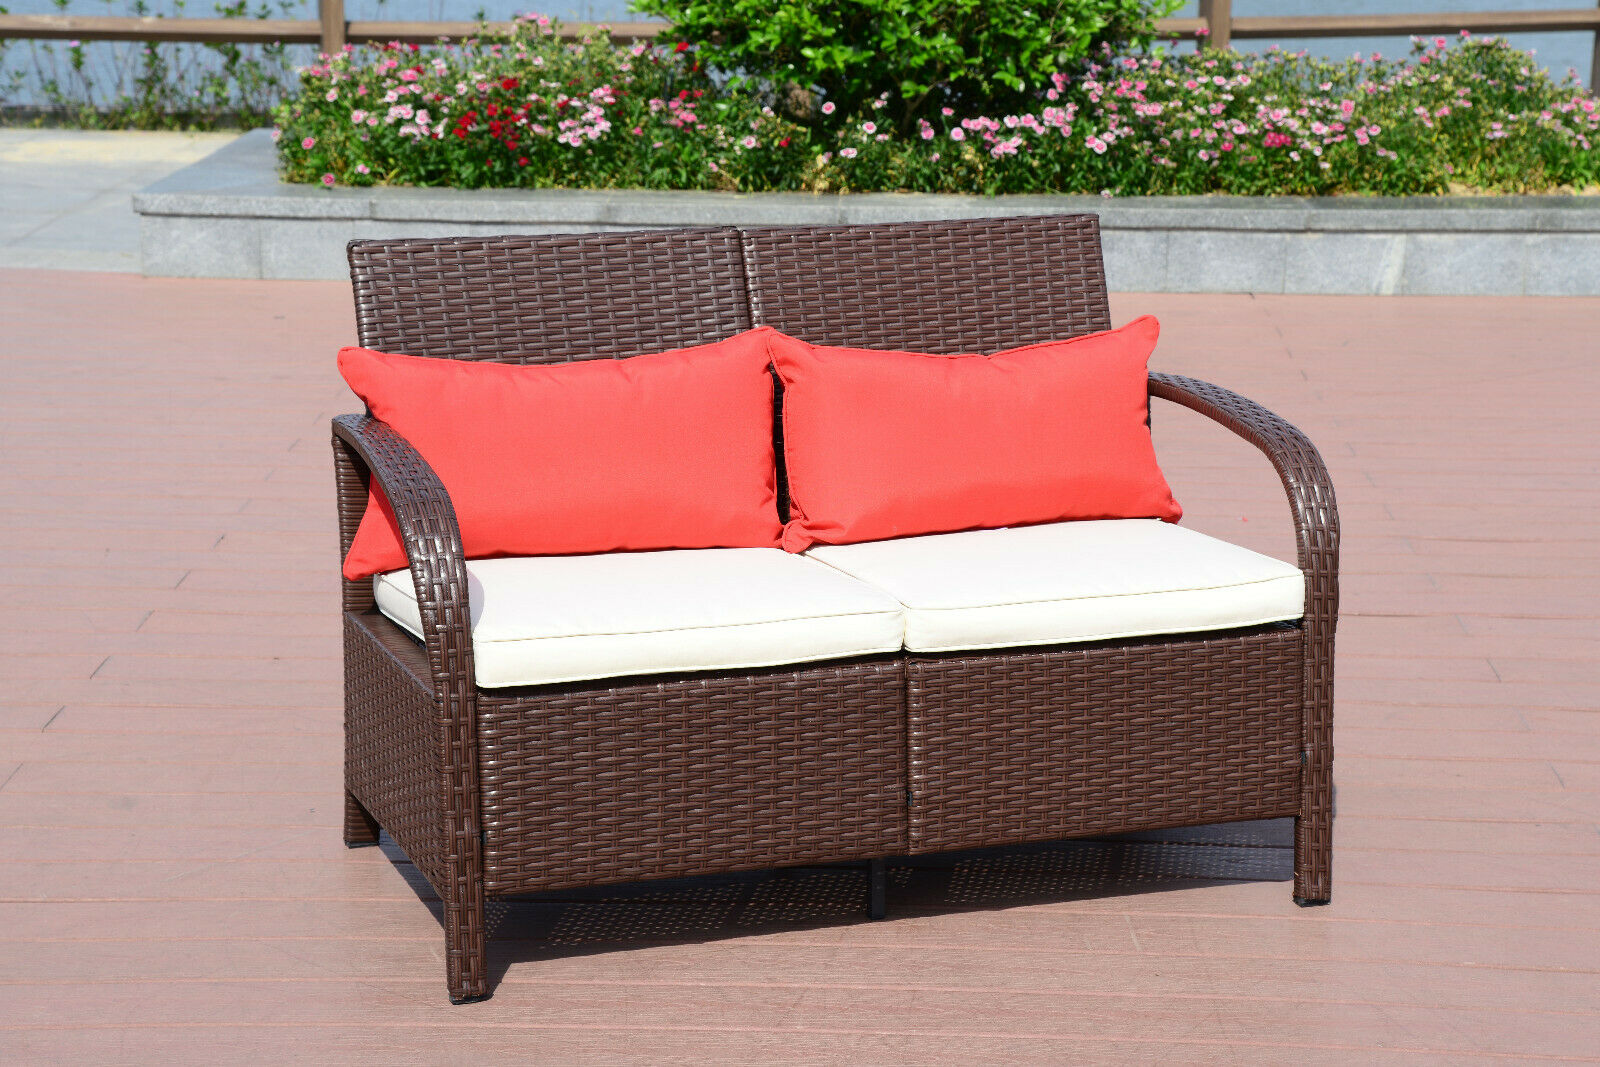 Garden Furniture - 2 PC Wicker Rattan Furniture Bistro Set Loveseat Sofa Outdoor Patio Garden Chair